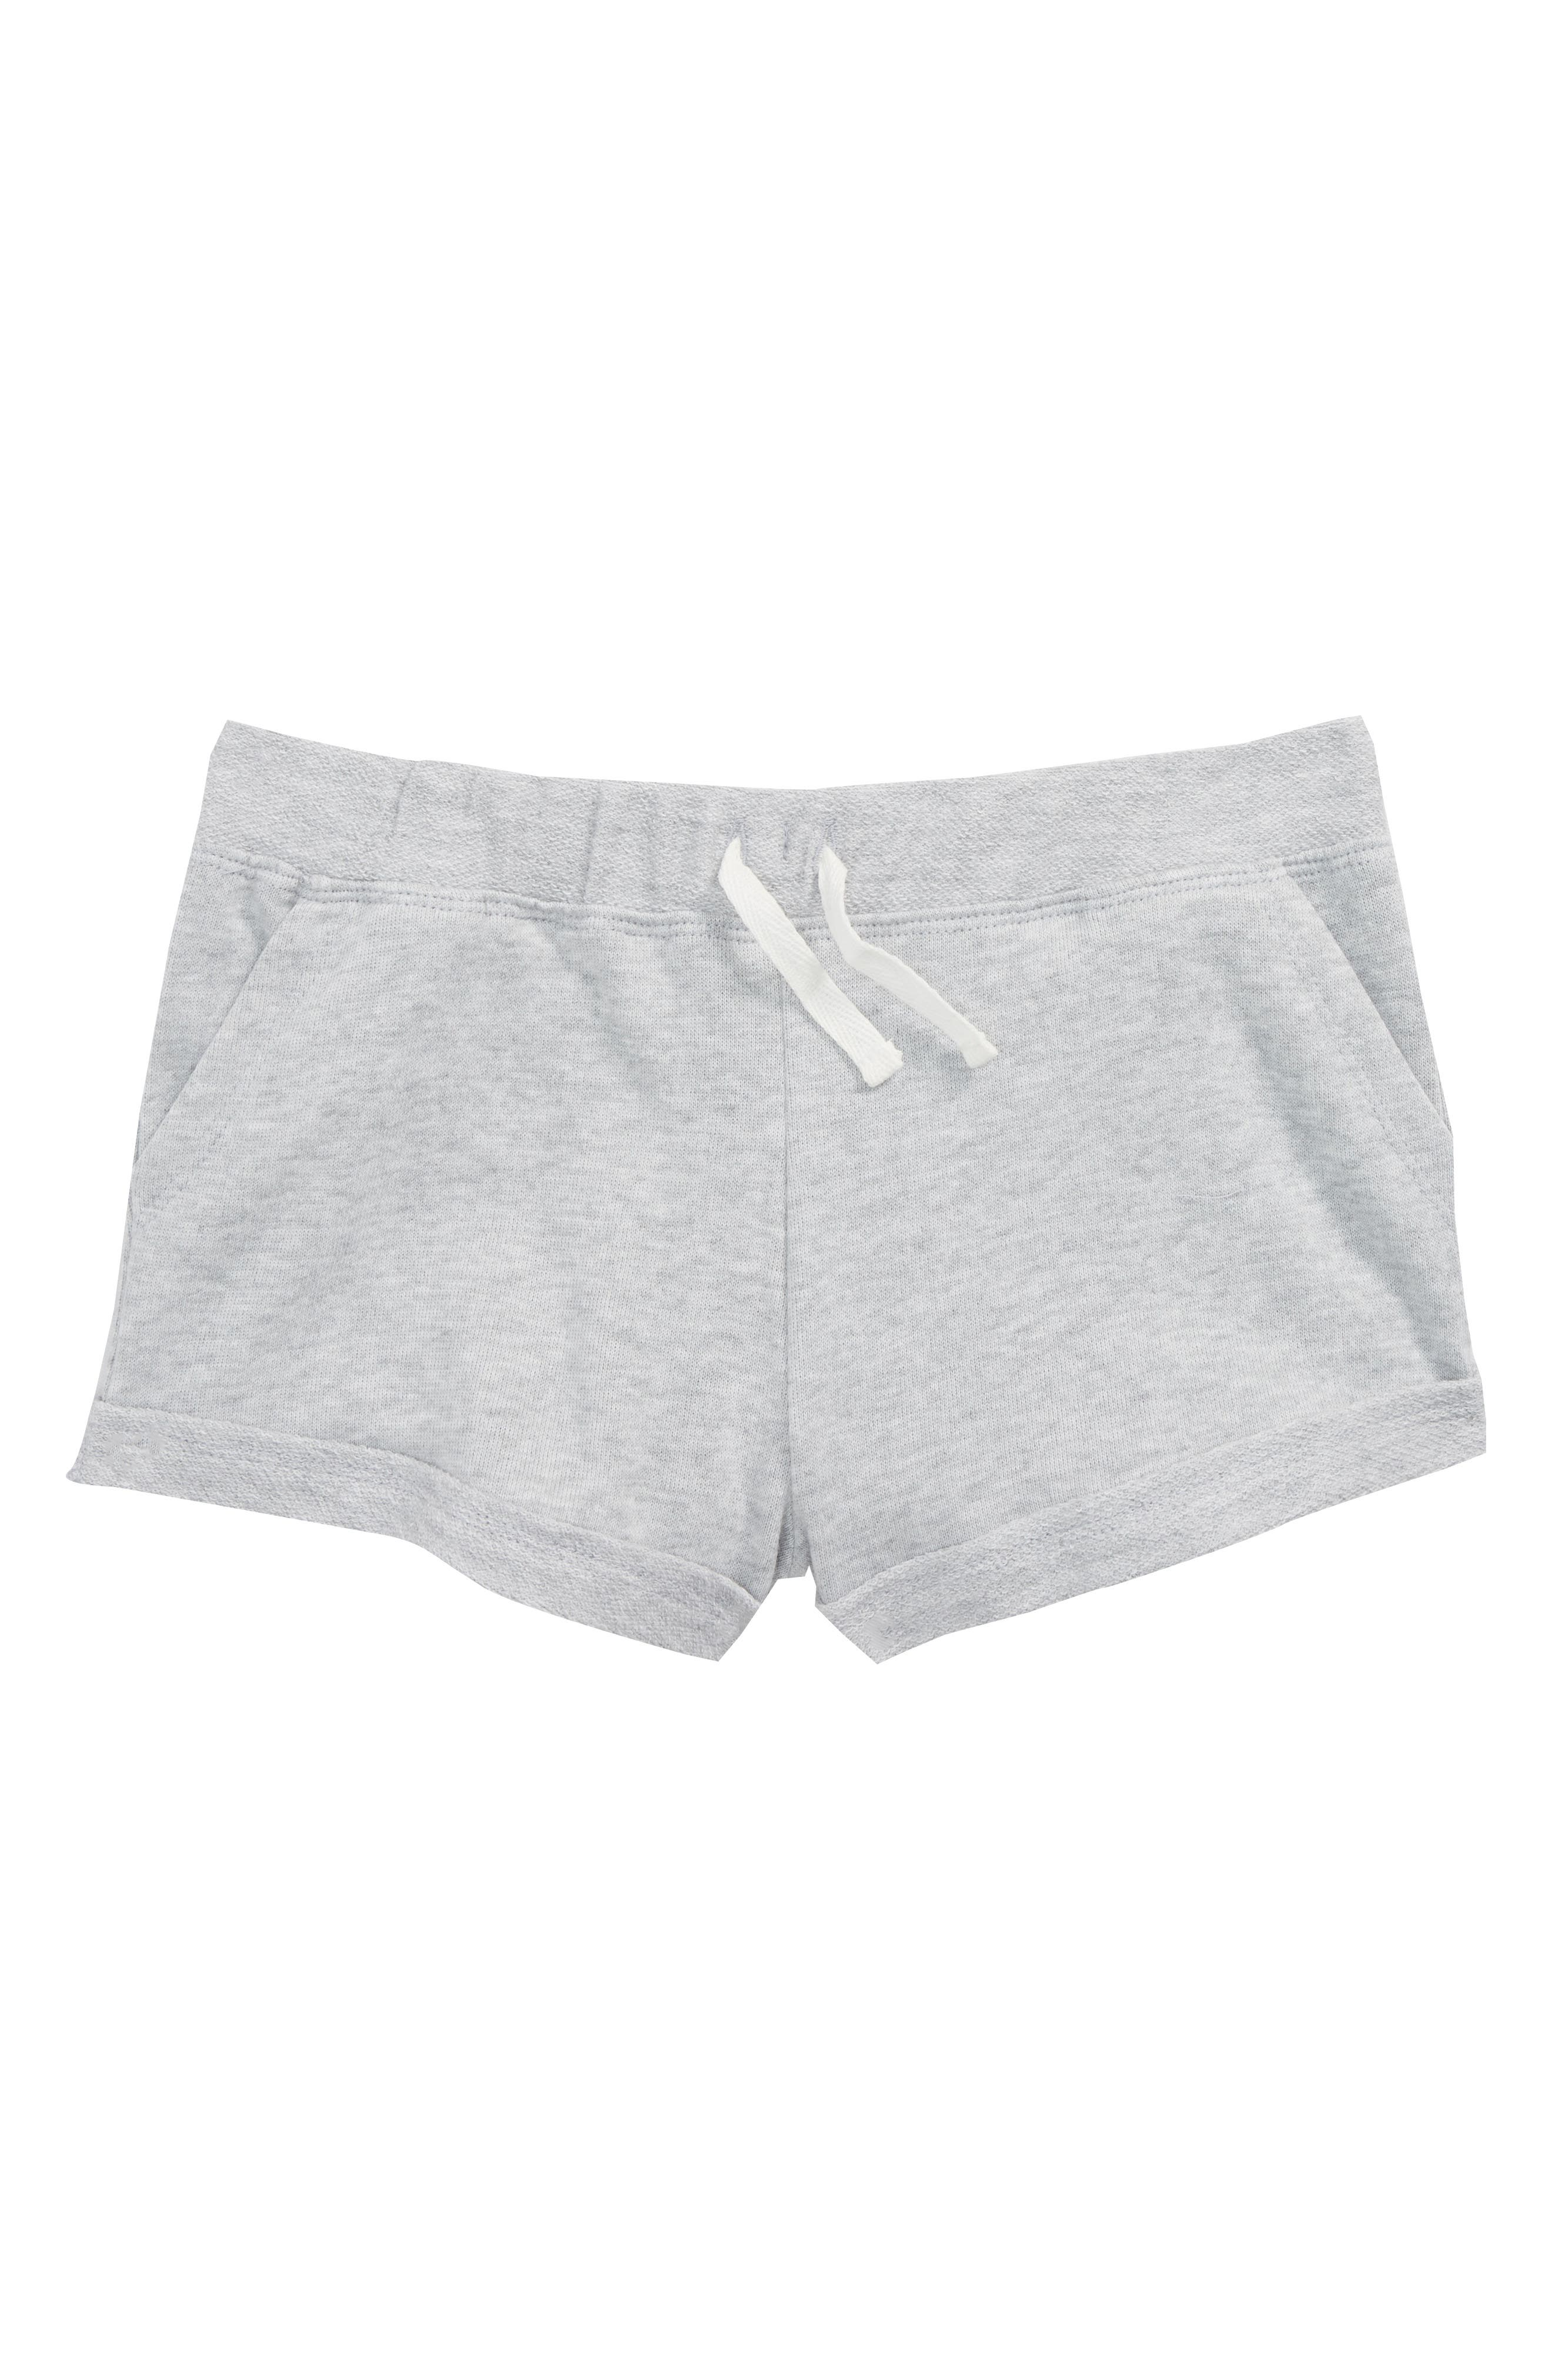 Cuff French Terry Shorts,                         Main,                         color, 052